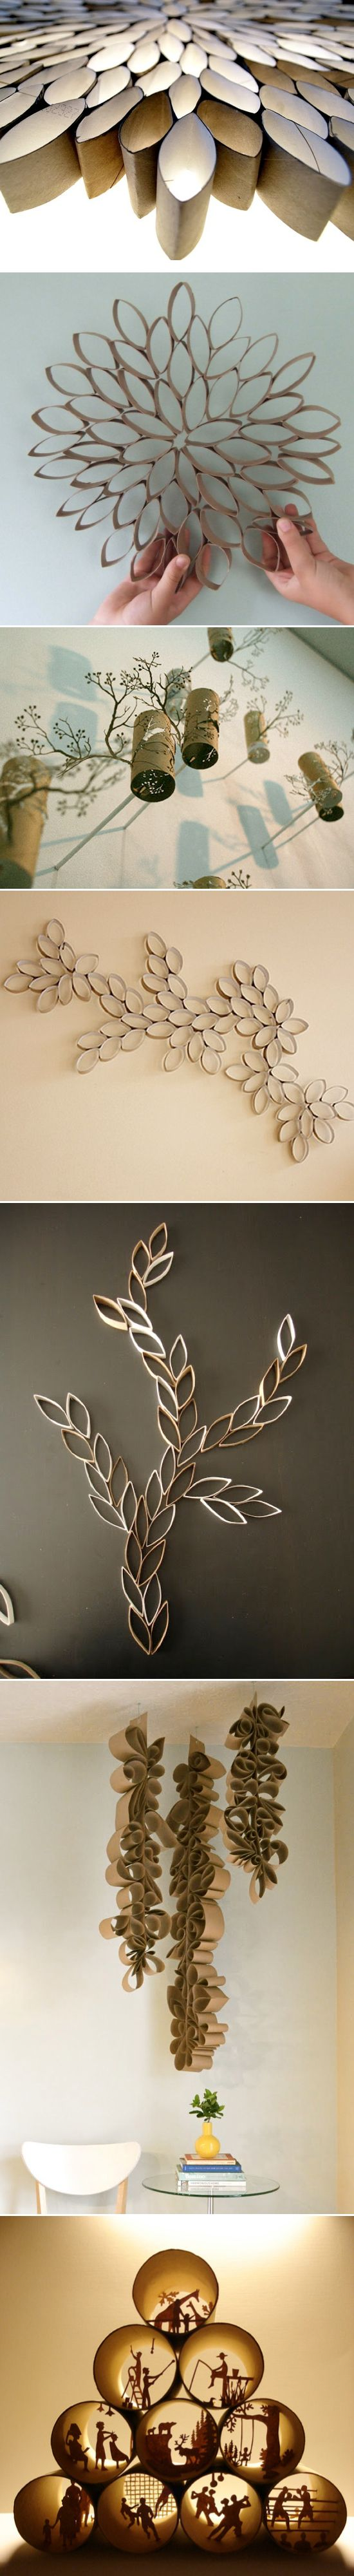 Toilet Paper Roll Crafting.....the bottom image is definitely something I would try. //Manbo